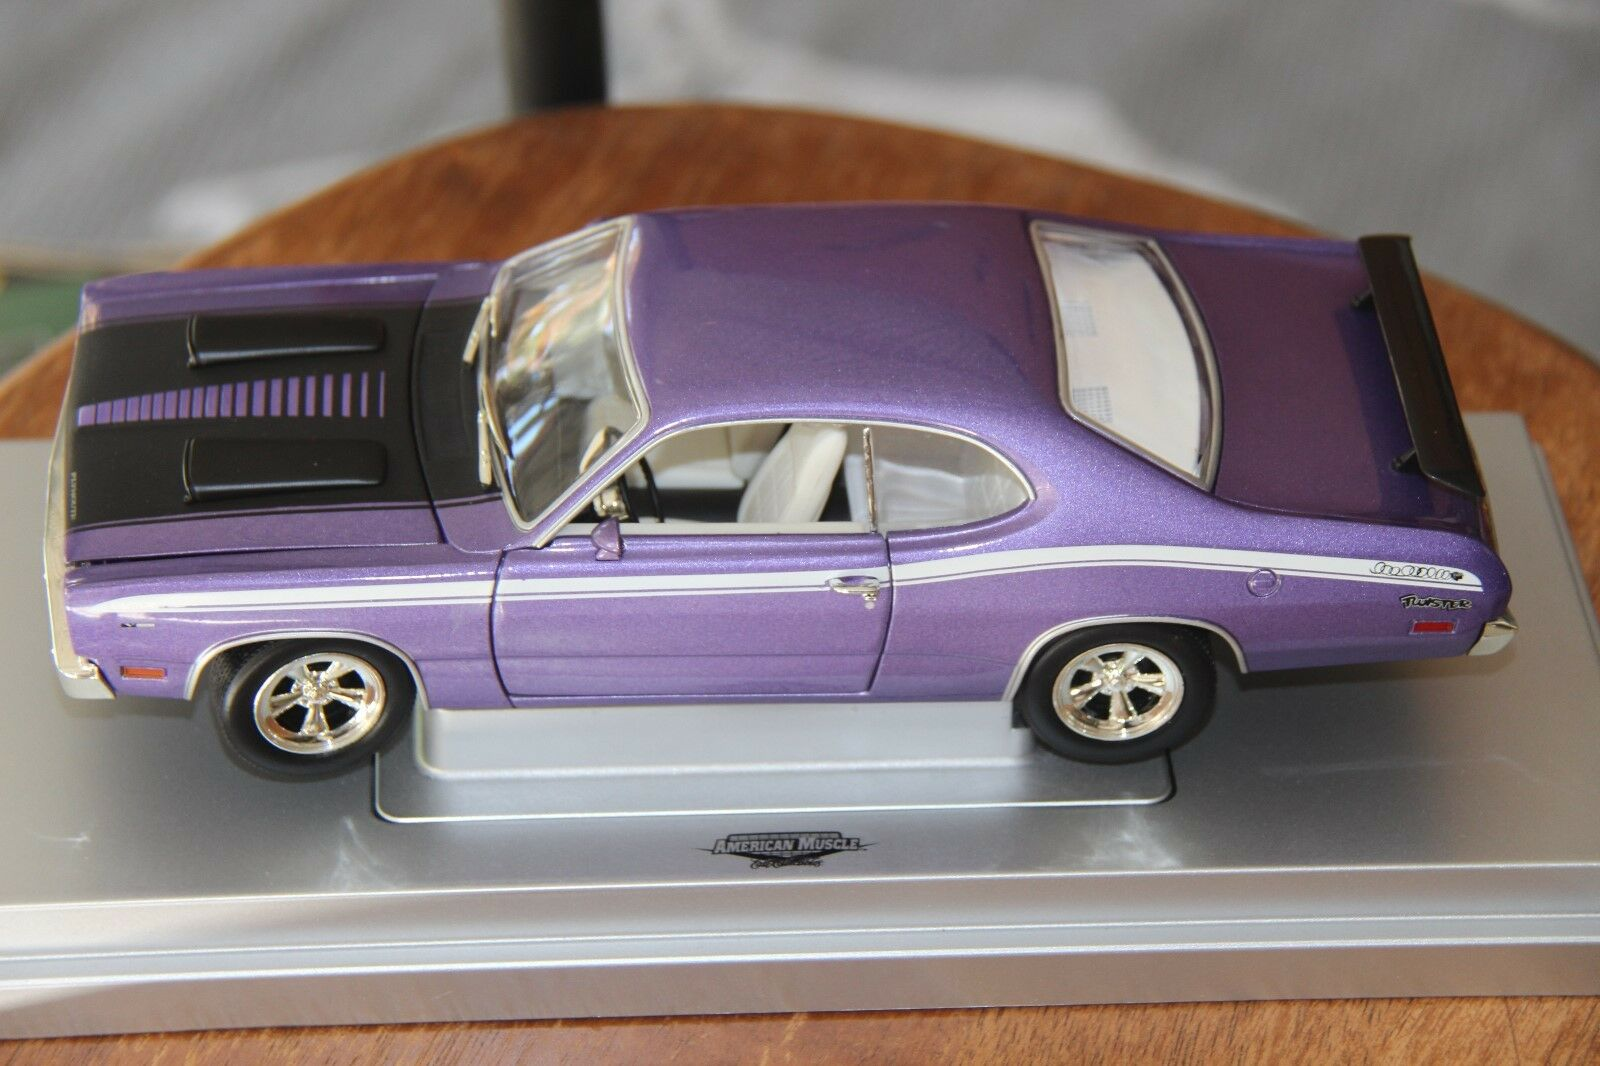 Plymouth Duster 1971, Purple, ERTL American Muscle, 1 18, New, Rare.